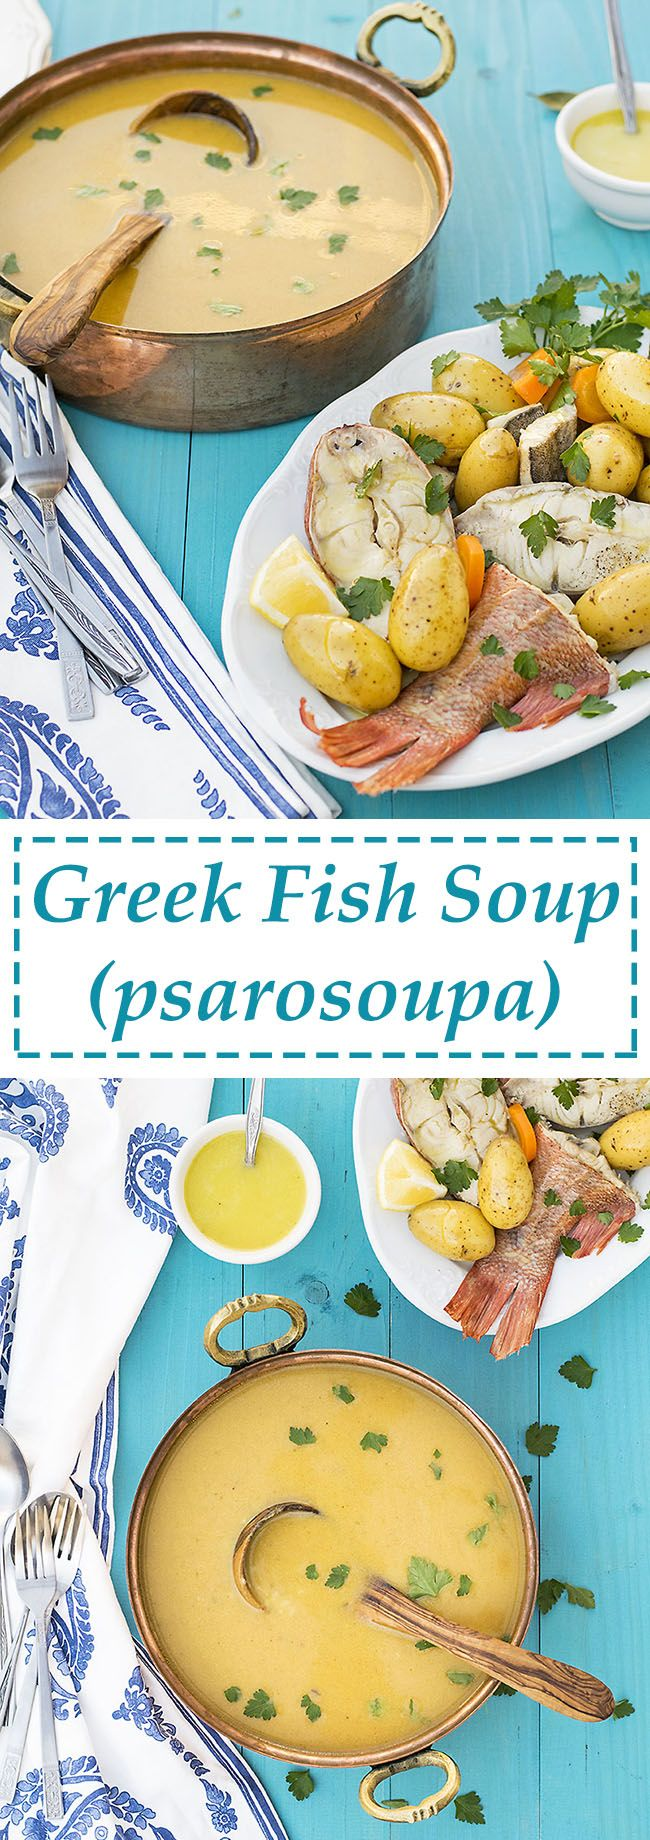 This Greek fish soup with potatoes and vegetables is a healthy and naturally gluten-free recipe for a wholesome and cozy family dinner.